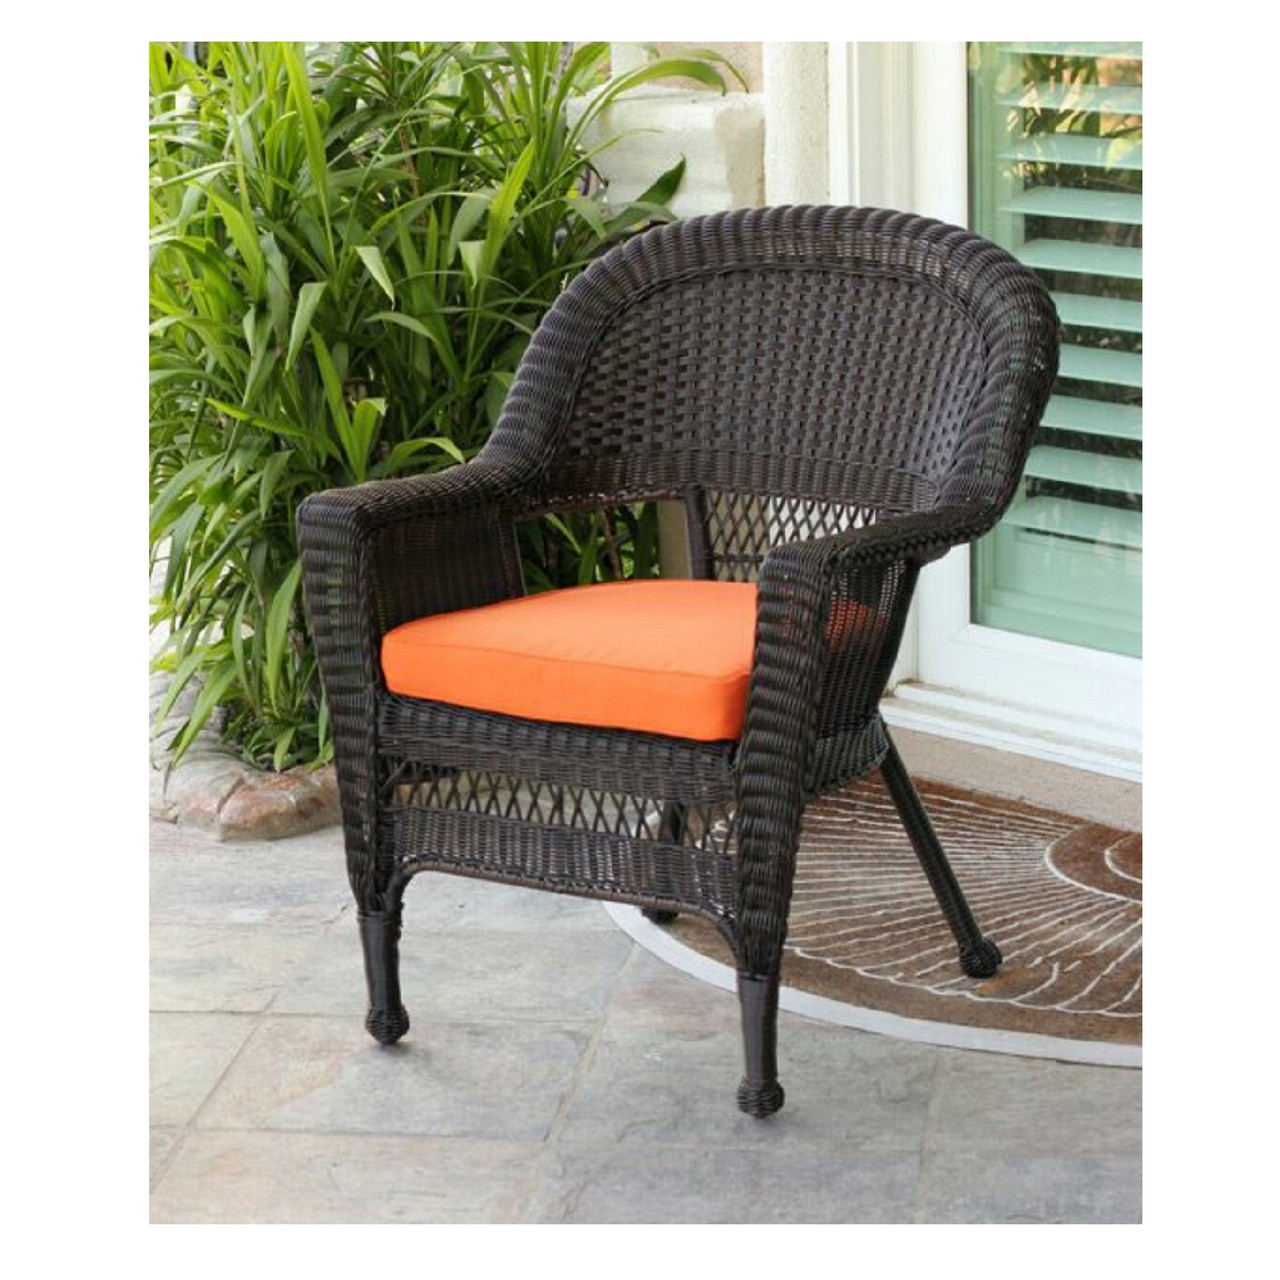 comfortable wicker chairs chair design through history 36 espresso brown resin outdoor patio garden orange cc living